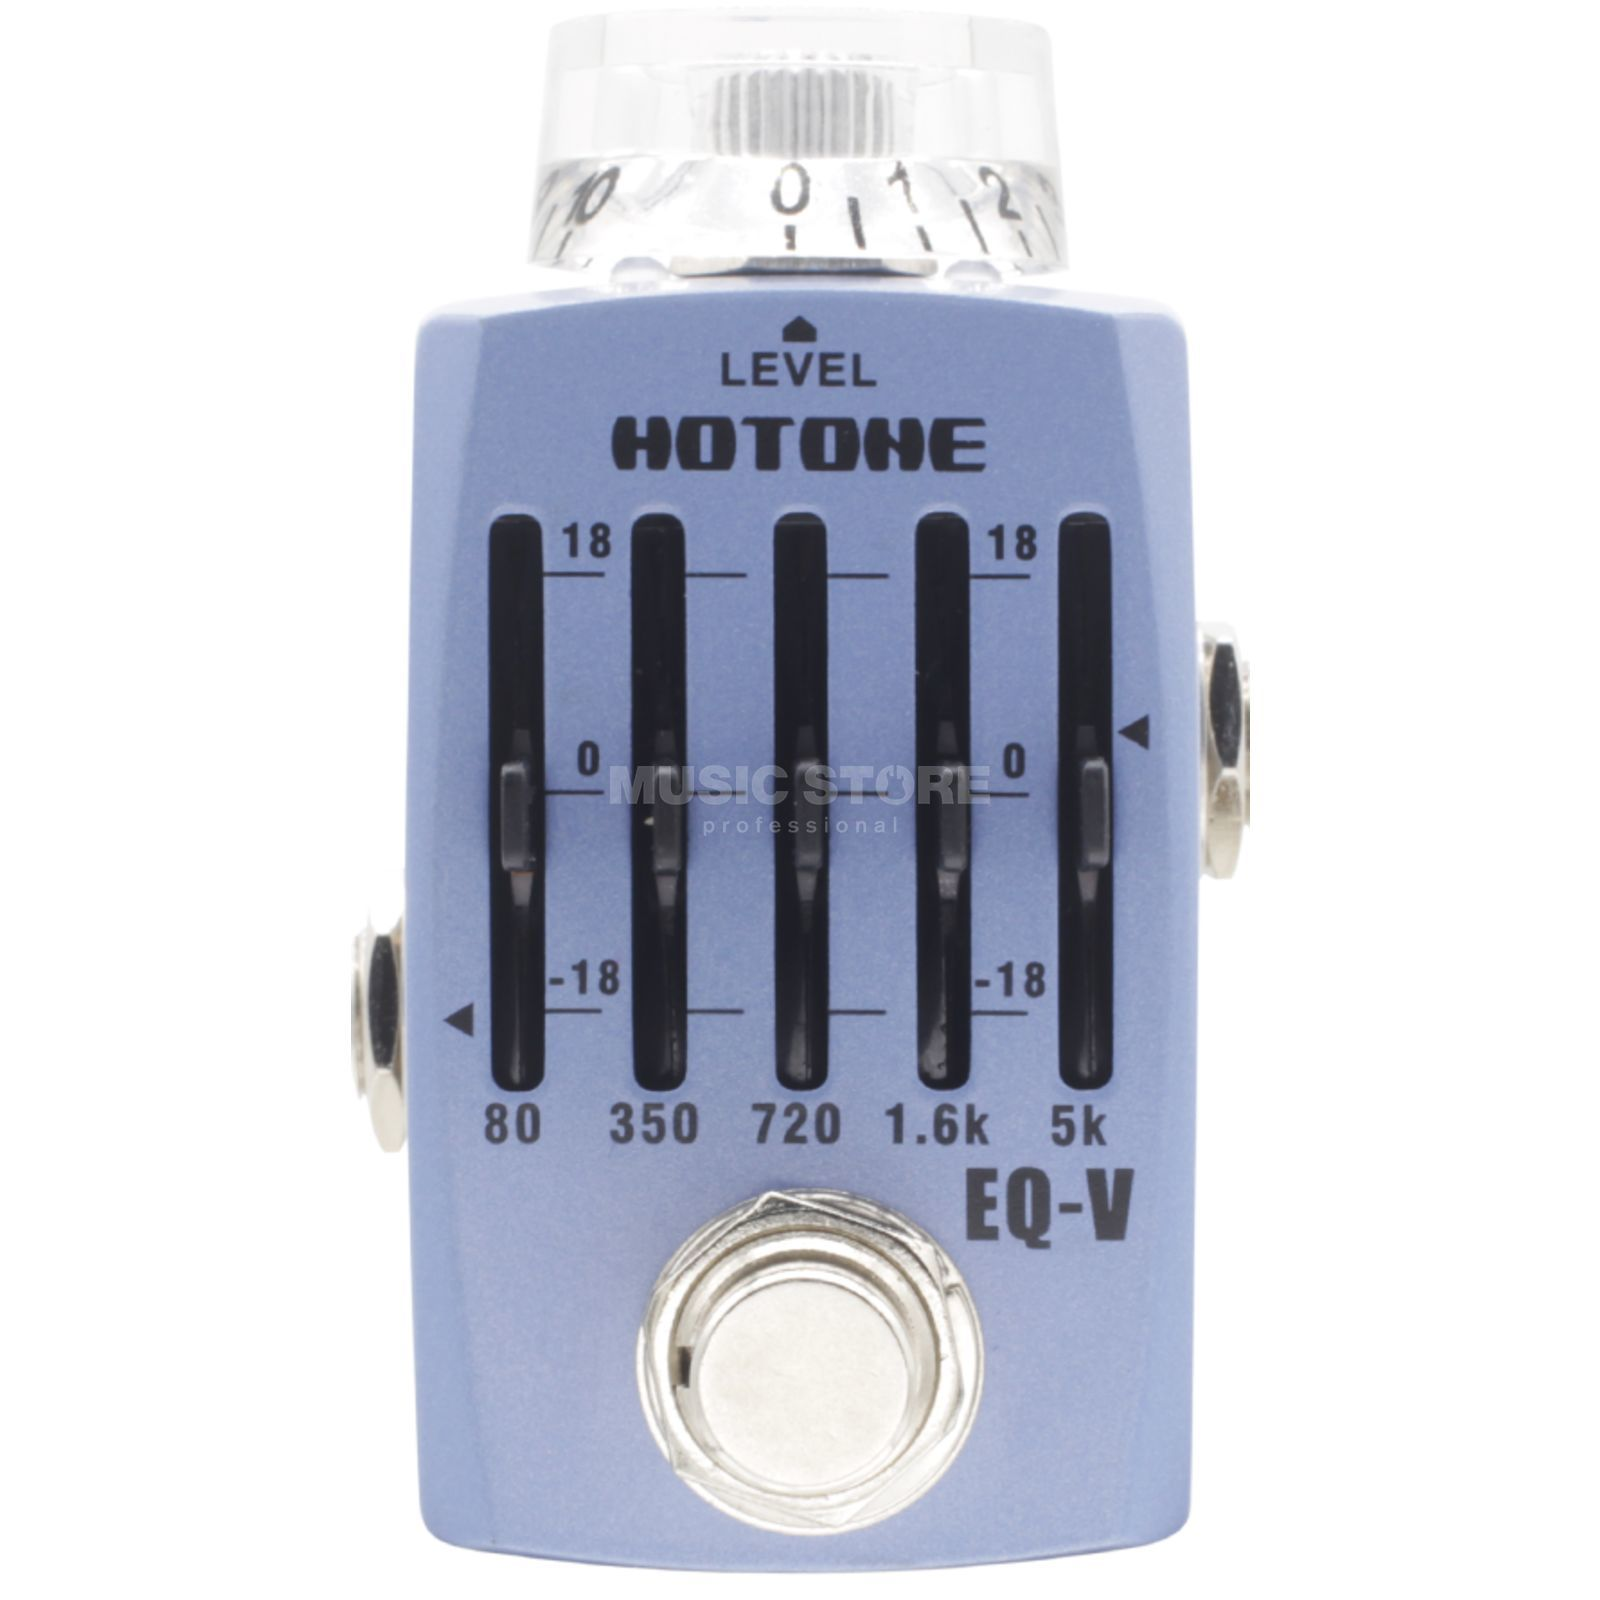 Hotone Skyline EQ-V Graphic Equalizer Product Image